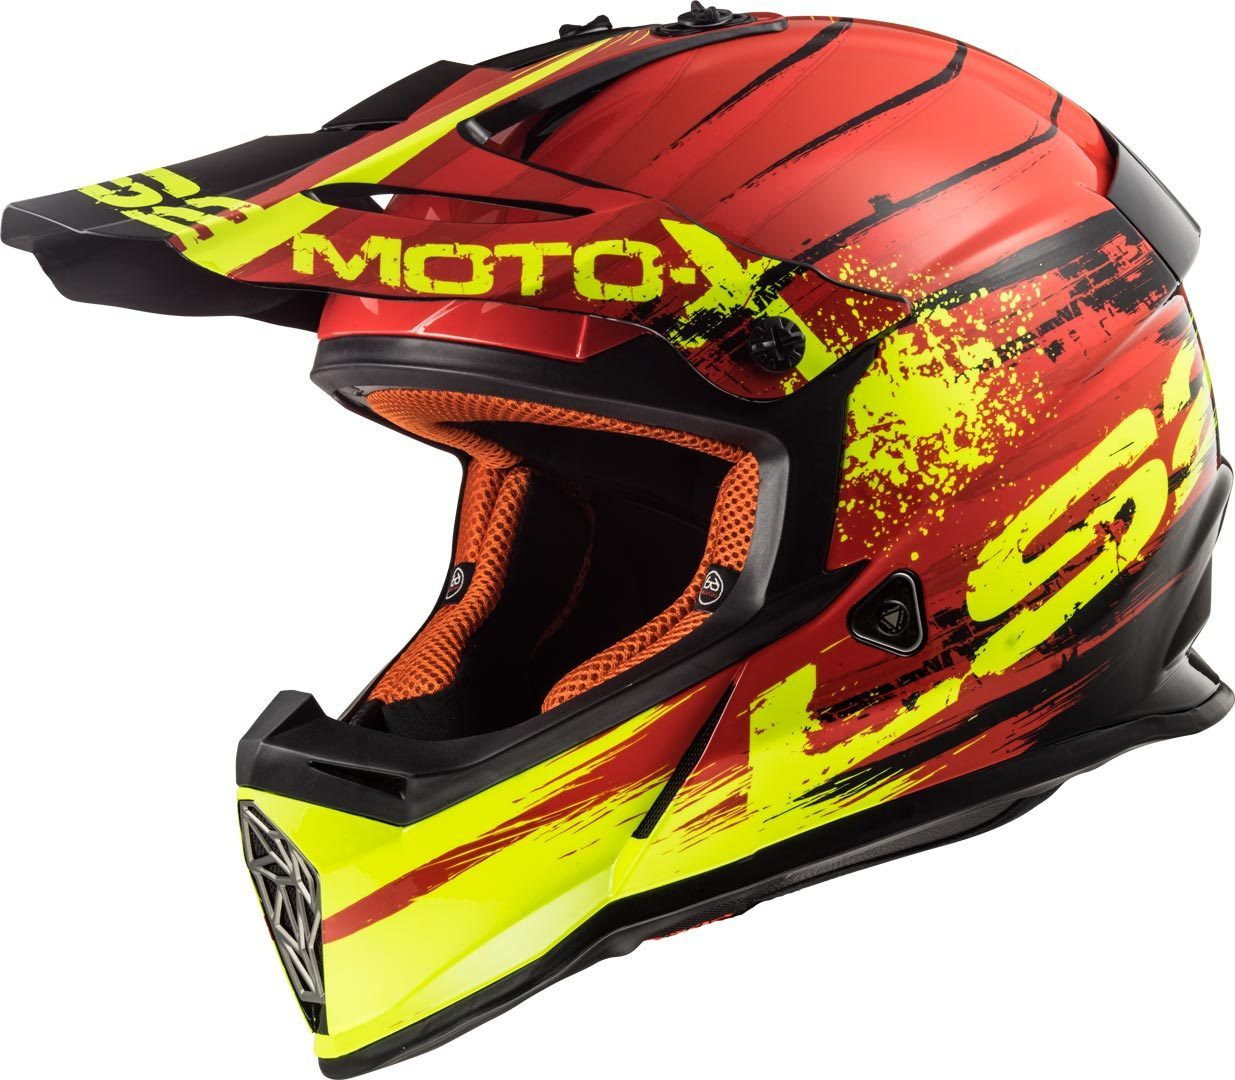 Casco Cross Ls2 Ff437 Fast Gator Rojo Blanco